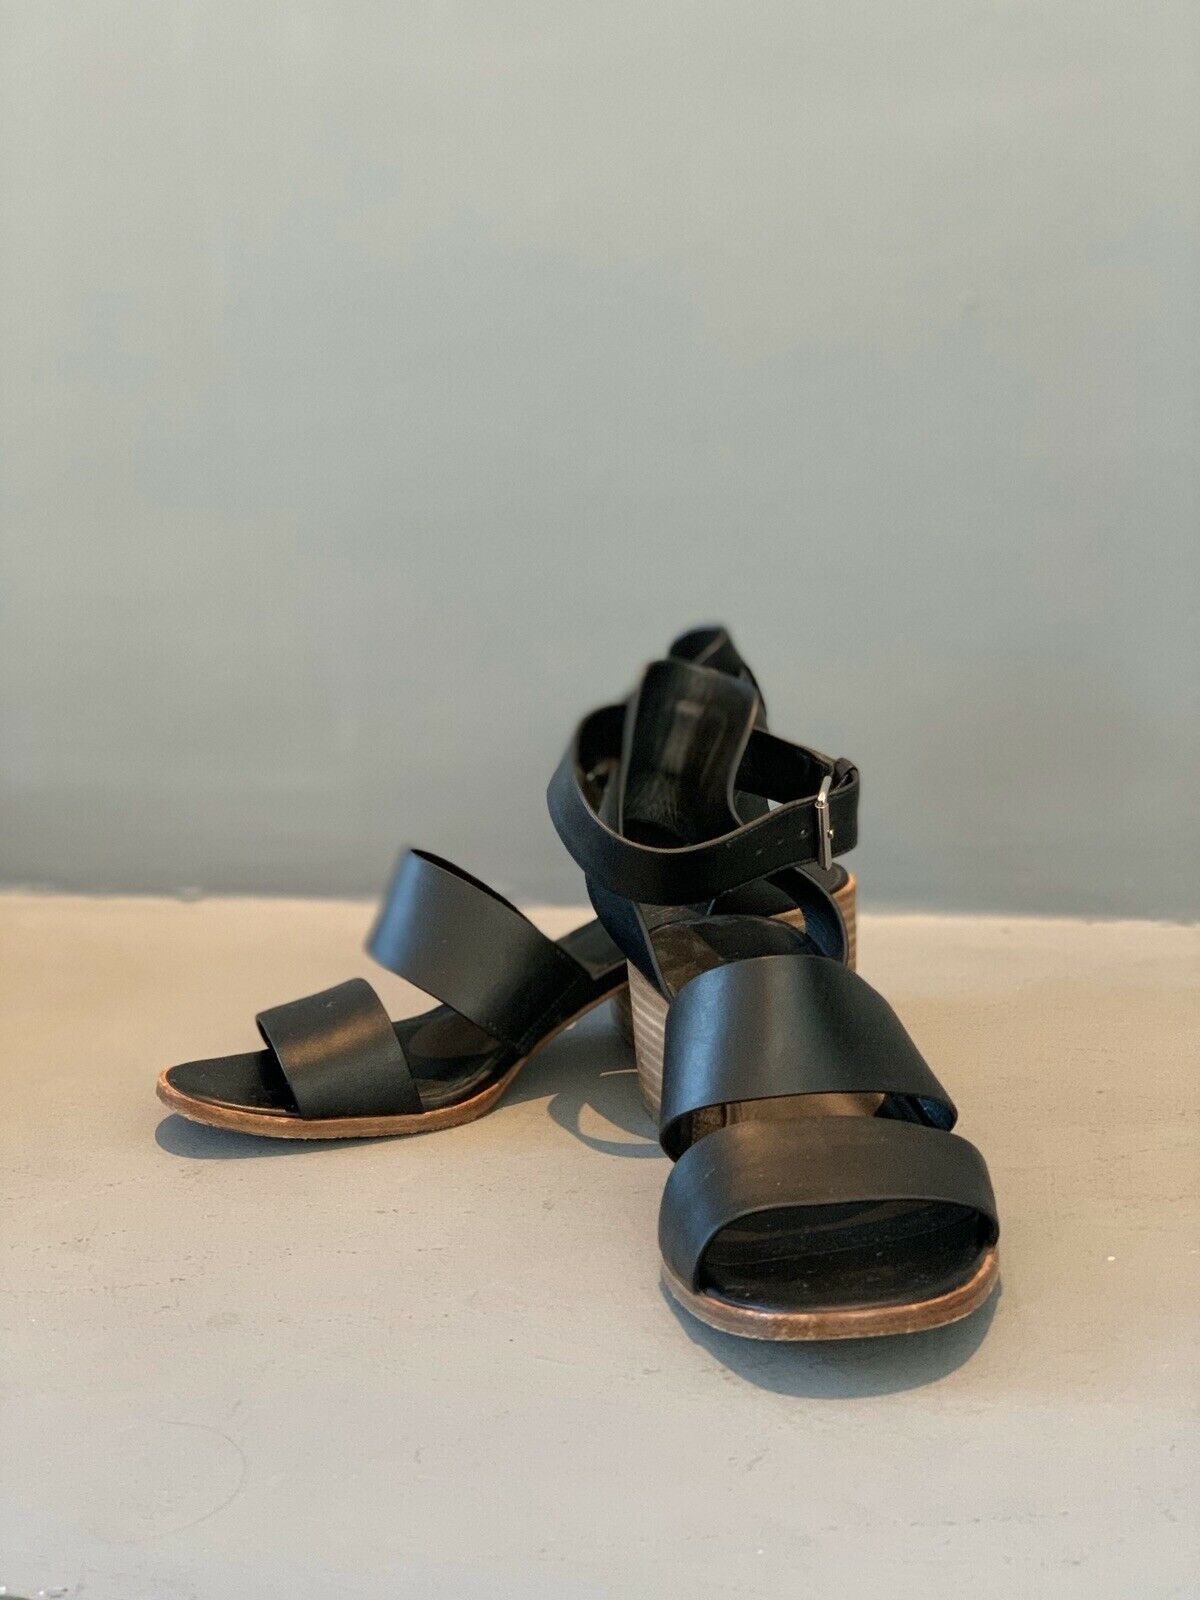 Vince Strappy Sandals - image 2